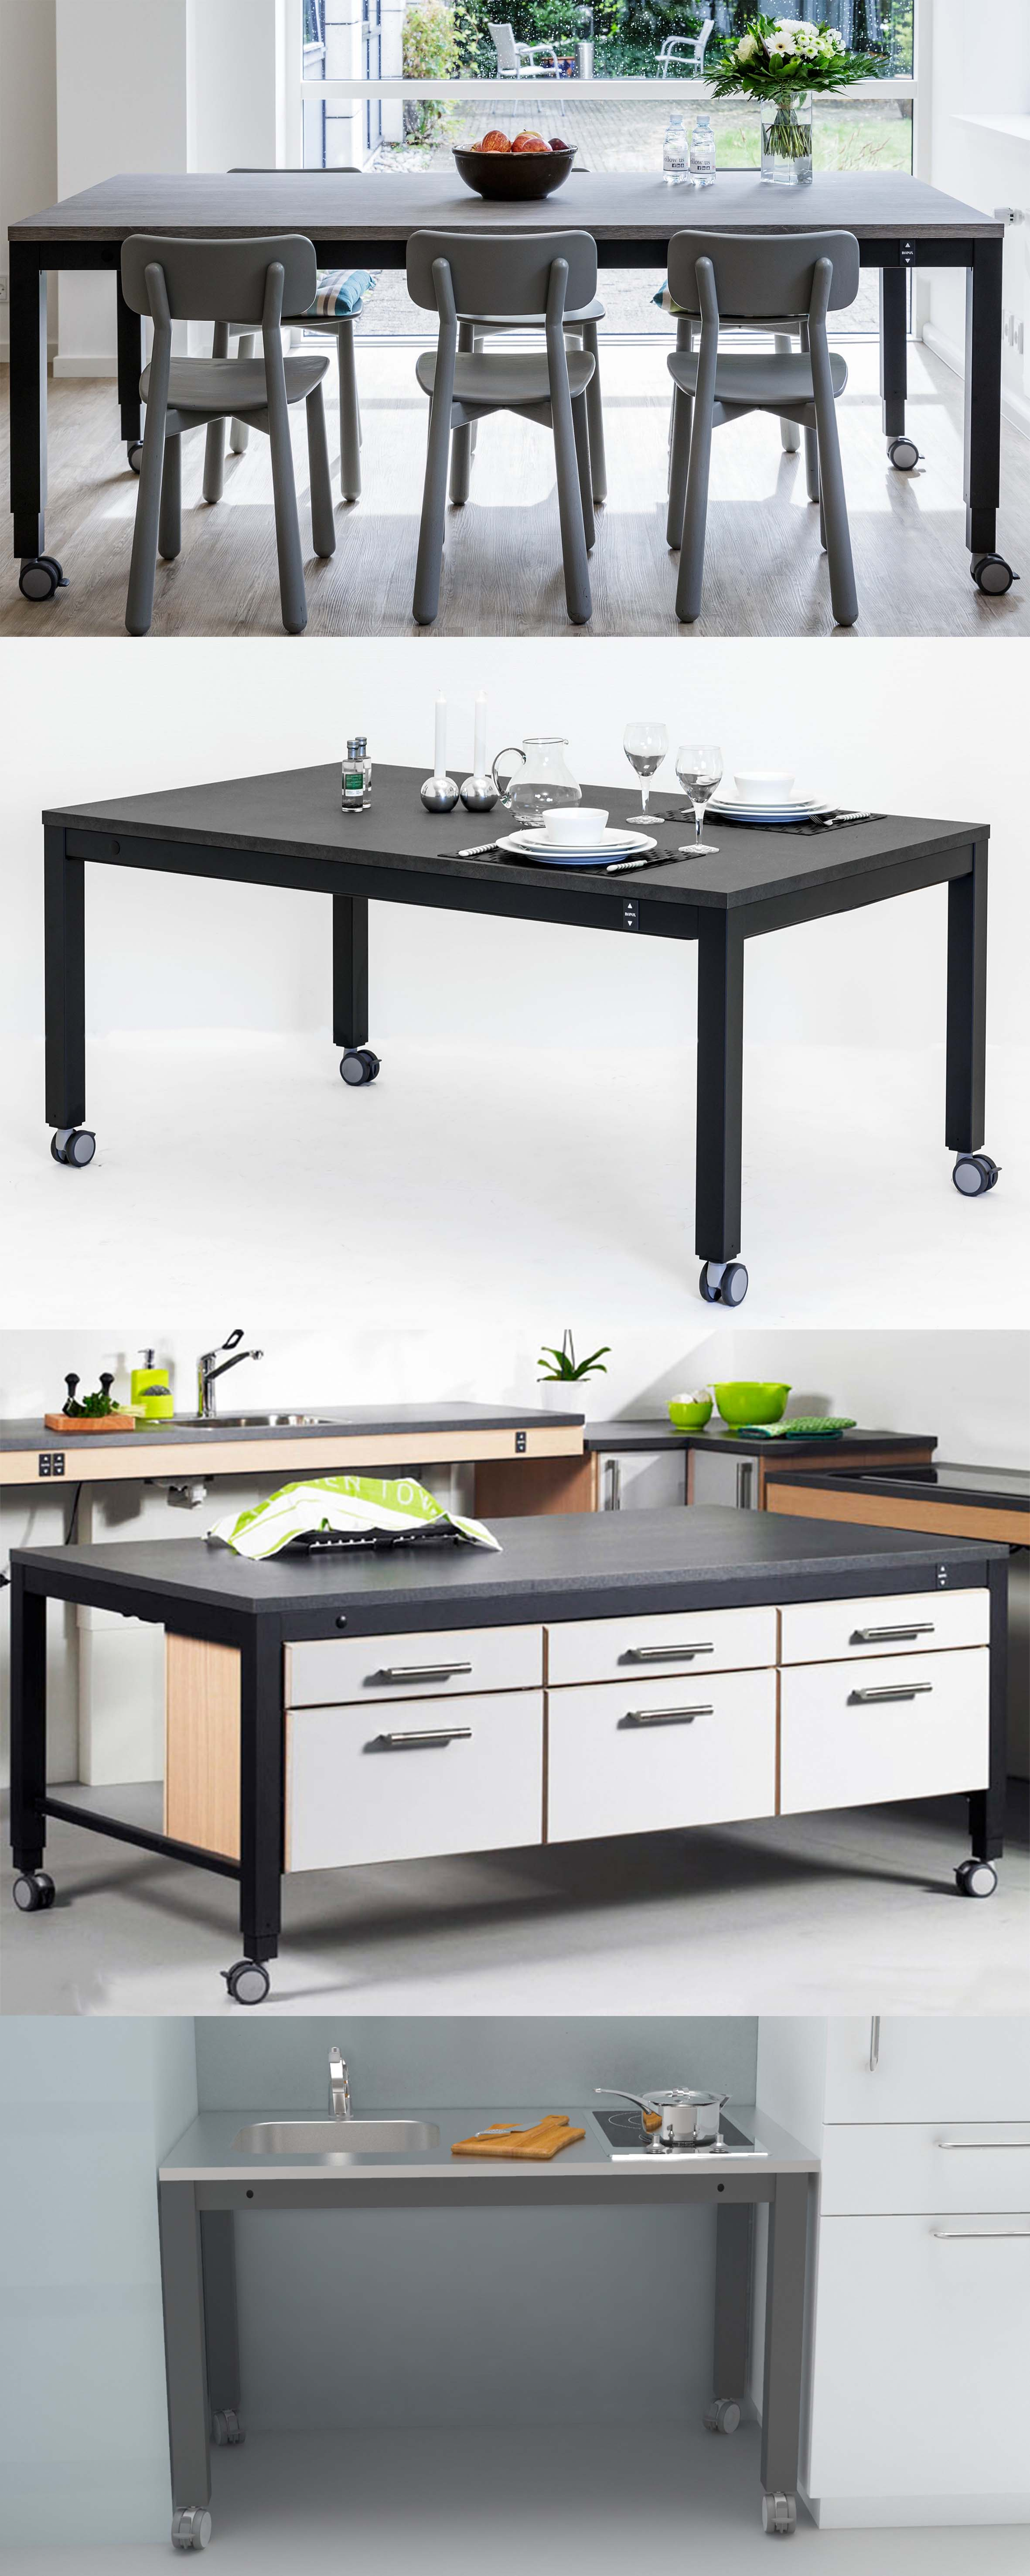 Ropox UK Table kitchen solutions